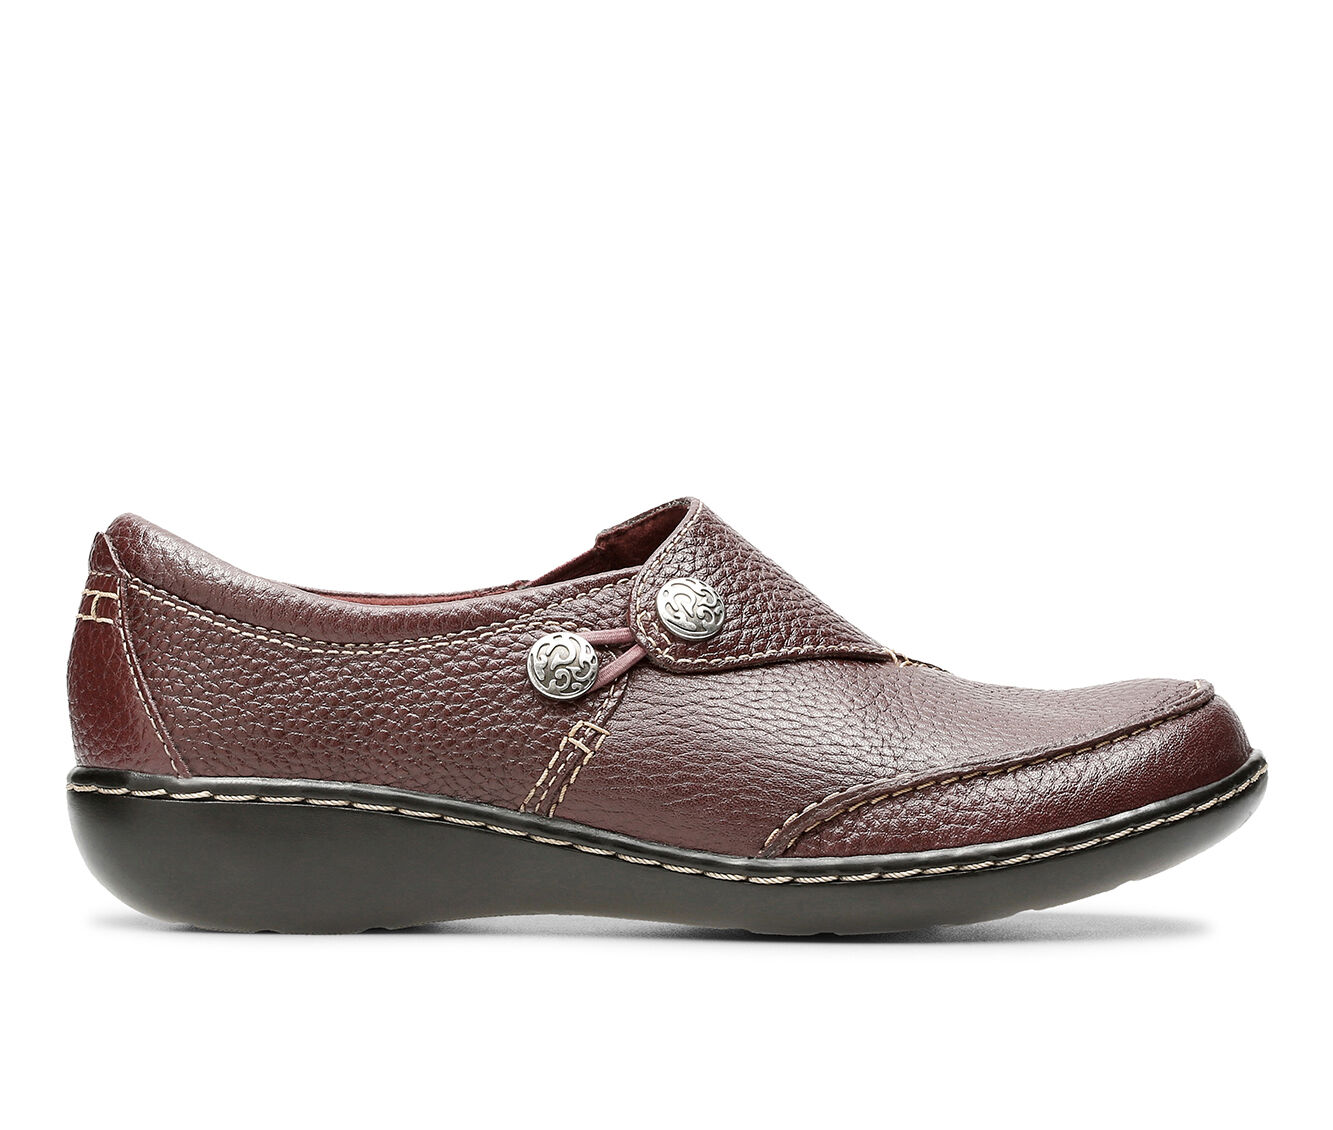 Women's Clarks Ashland Lane Q Burgandy